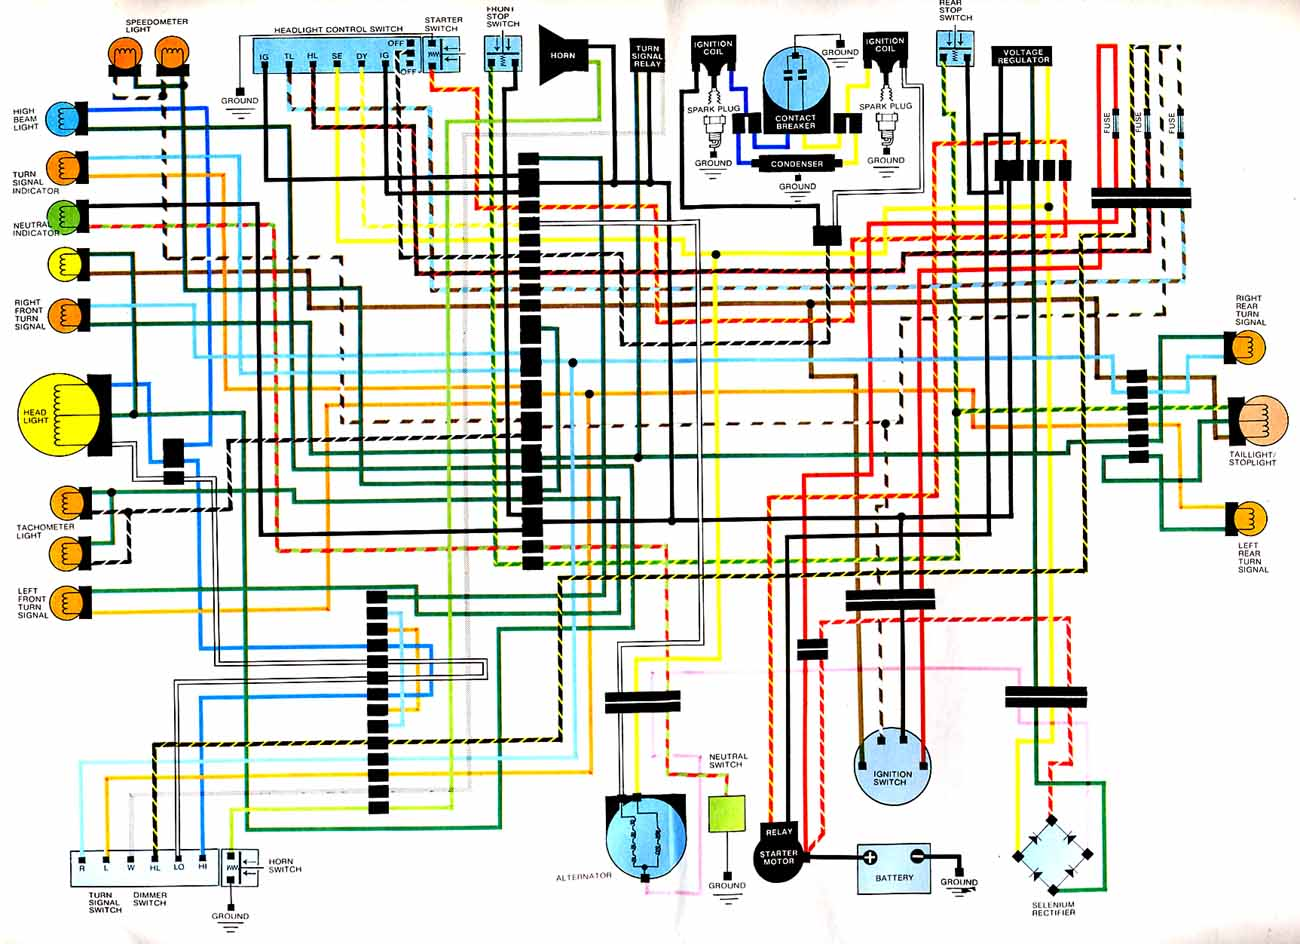 Cb360 Wiring Harness - Wiring Diagram Structure on n14 oil diagram, n14 fuel system diagram, n14 ecm pinout diagram, cummins isx engine diagram, n14 cummins harness diagram,